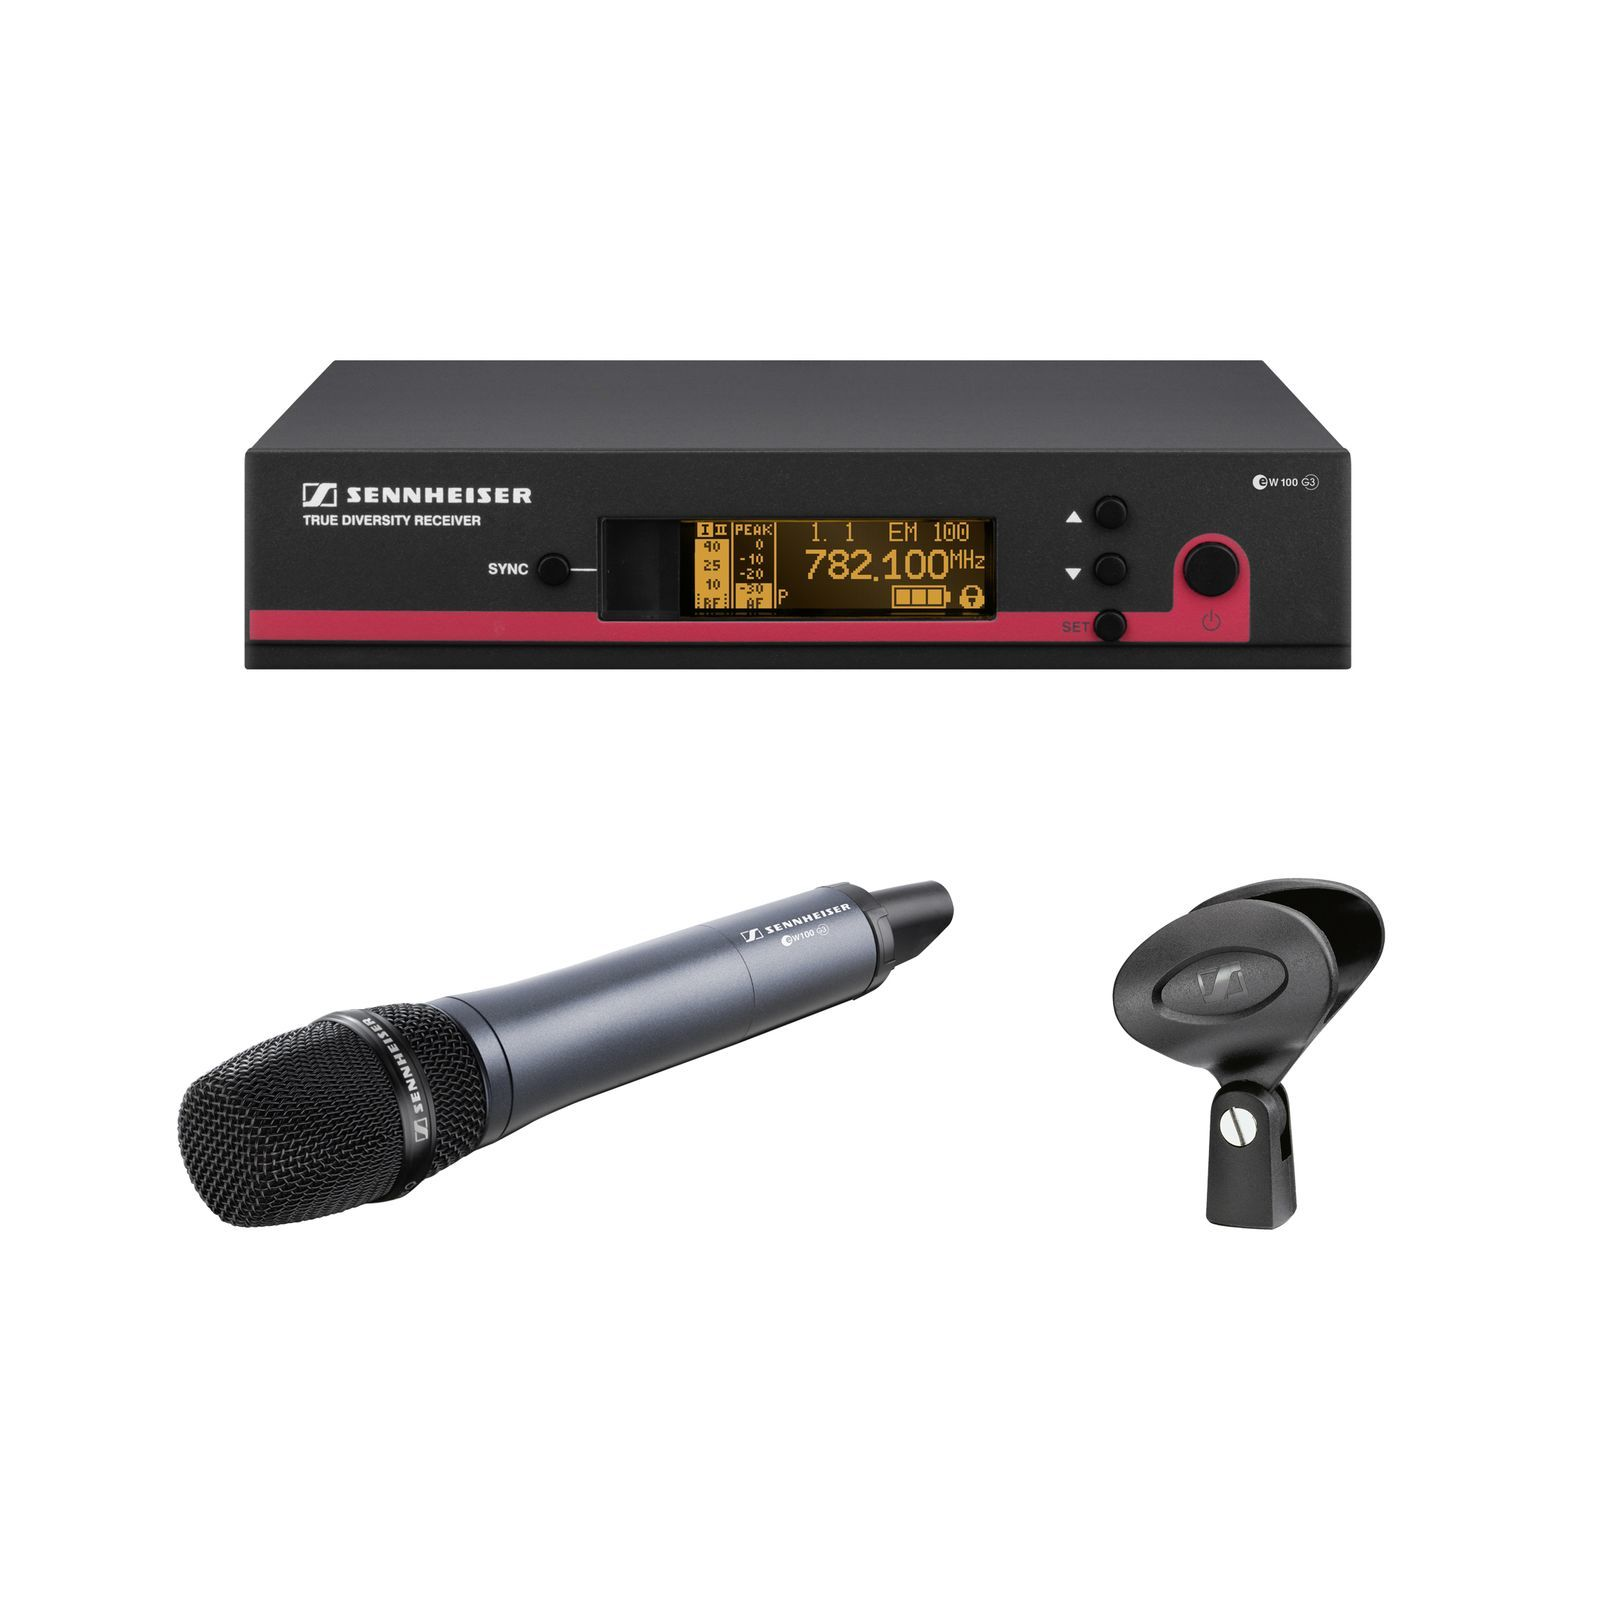 Sennheiser EW 145-GB G3 Vocal Set 606 - 648 MHz Produktbillede